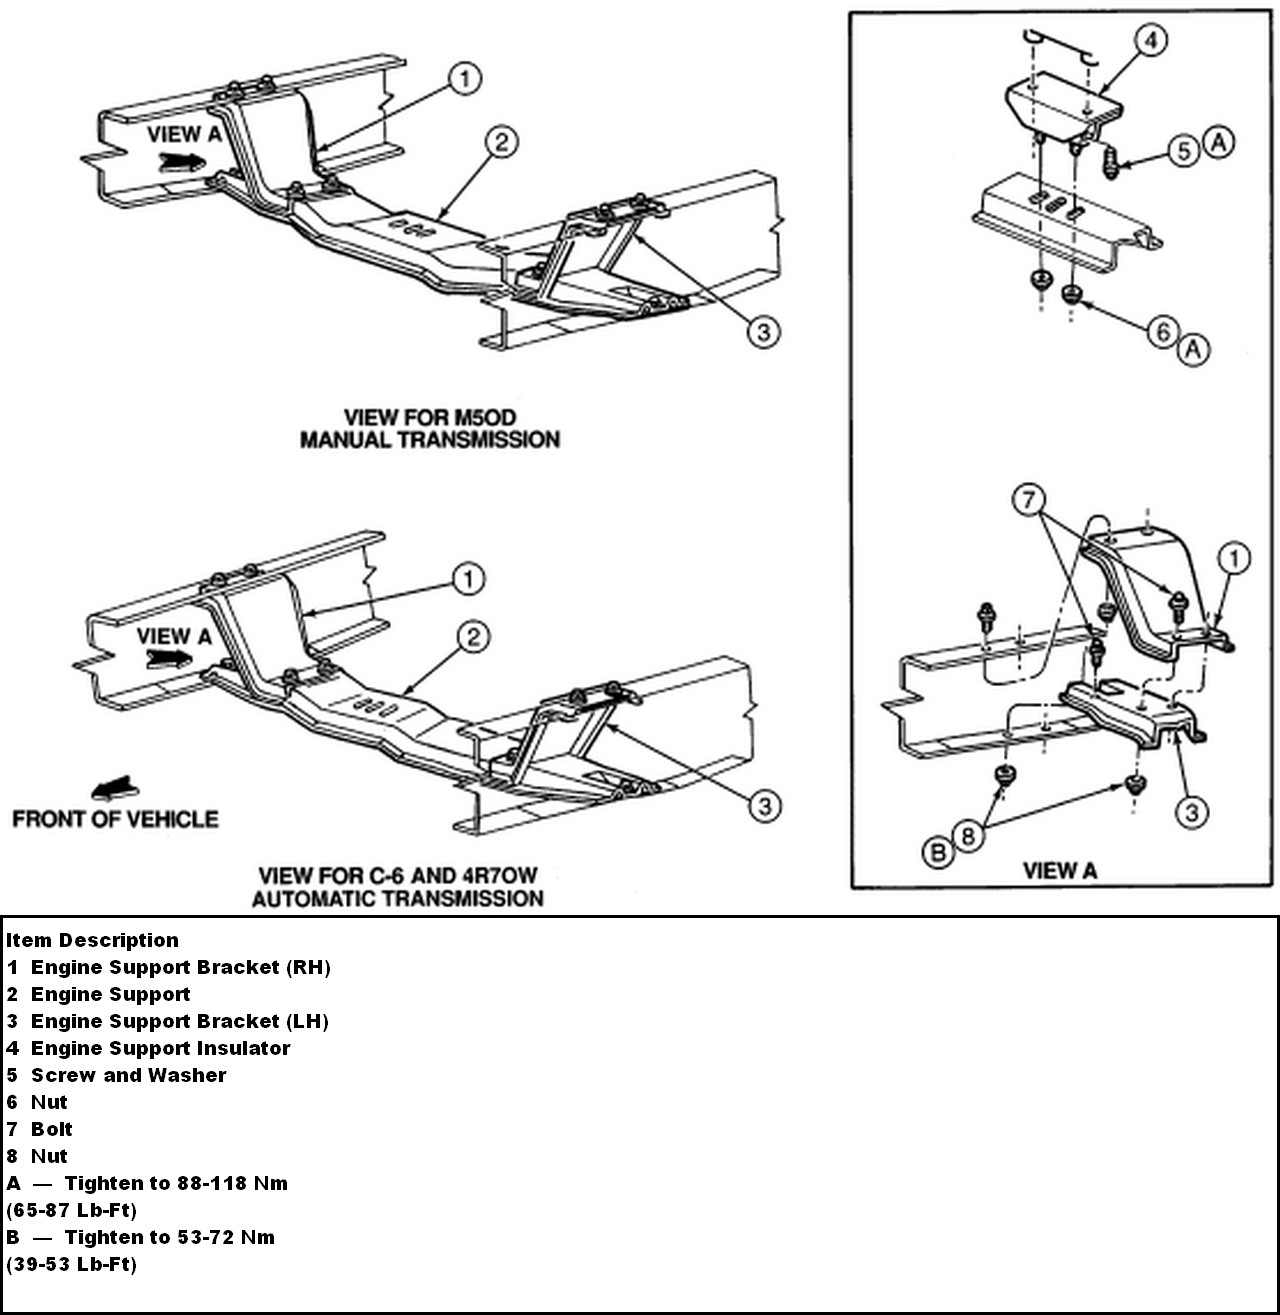 1996 f150 4.9l 5 speed transmission removal question ... 2003 ford f 150 4 6l engine diagram dip sticks #11